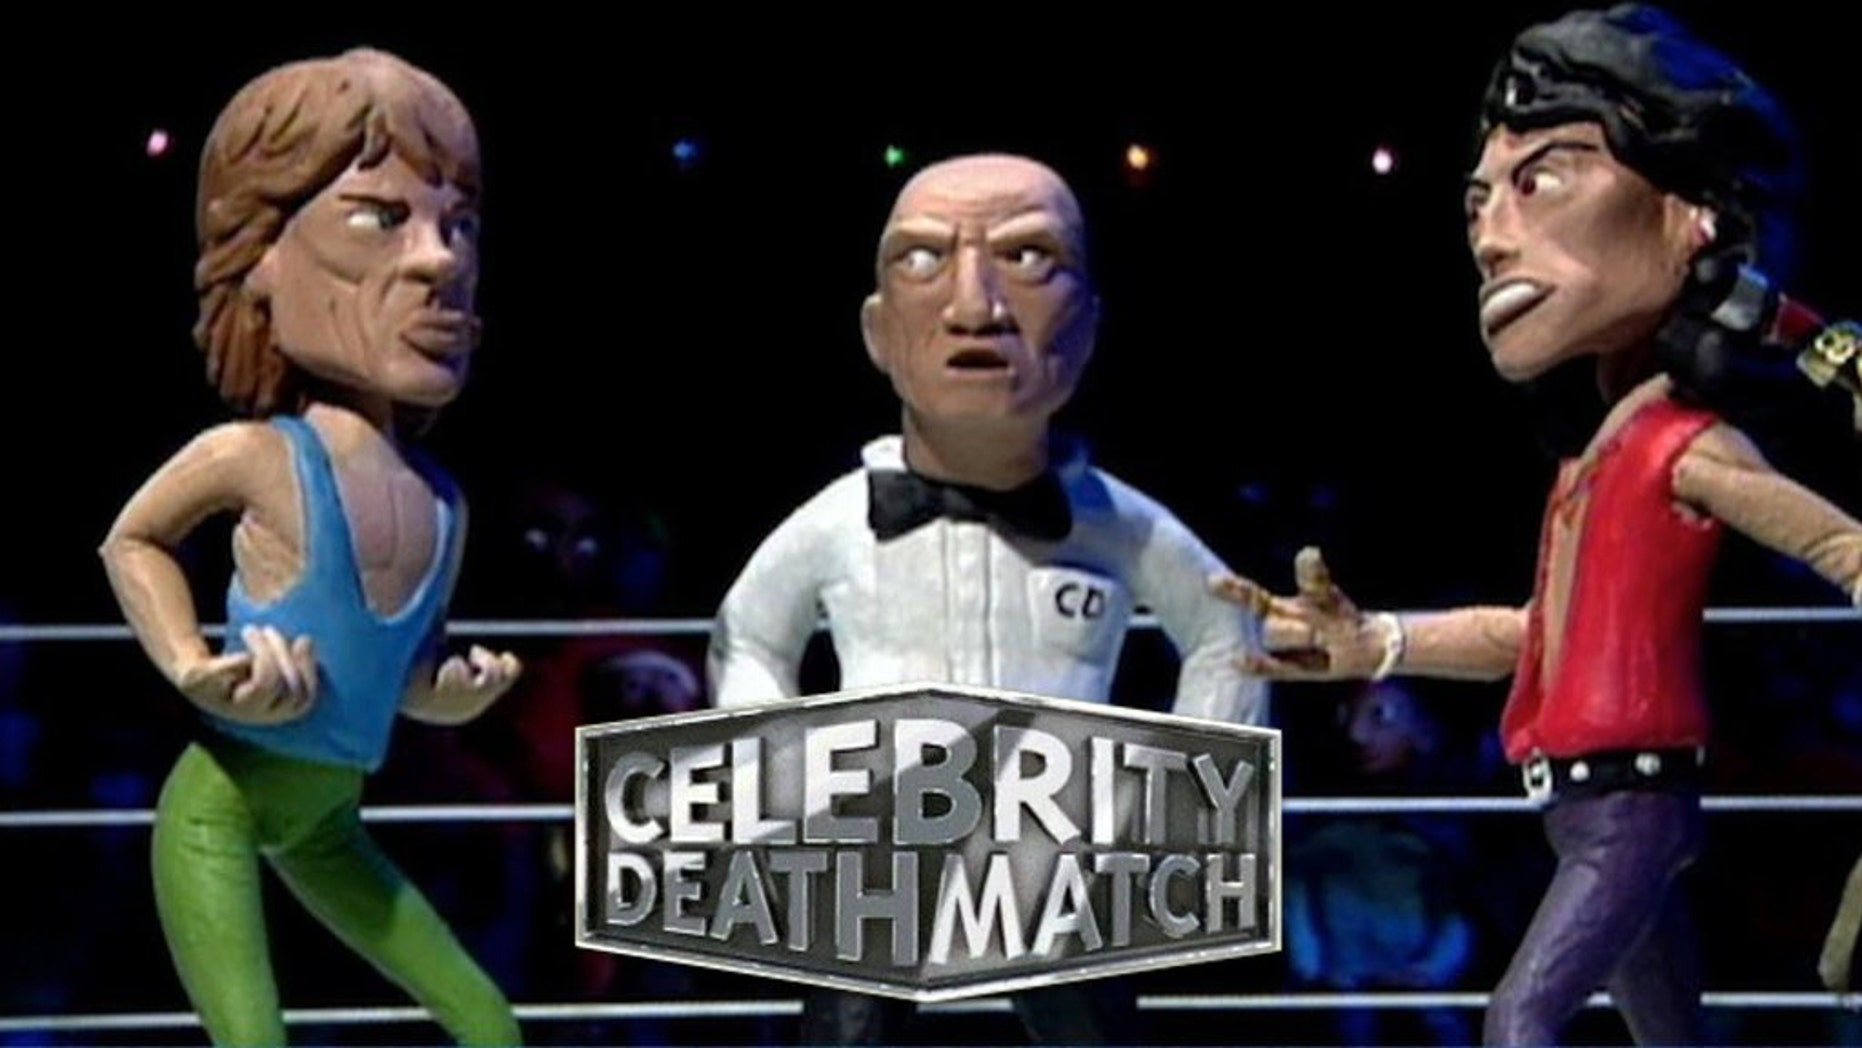 MTV Reviving Celebrity Deathmatch with Ice Cube Starring & Producing